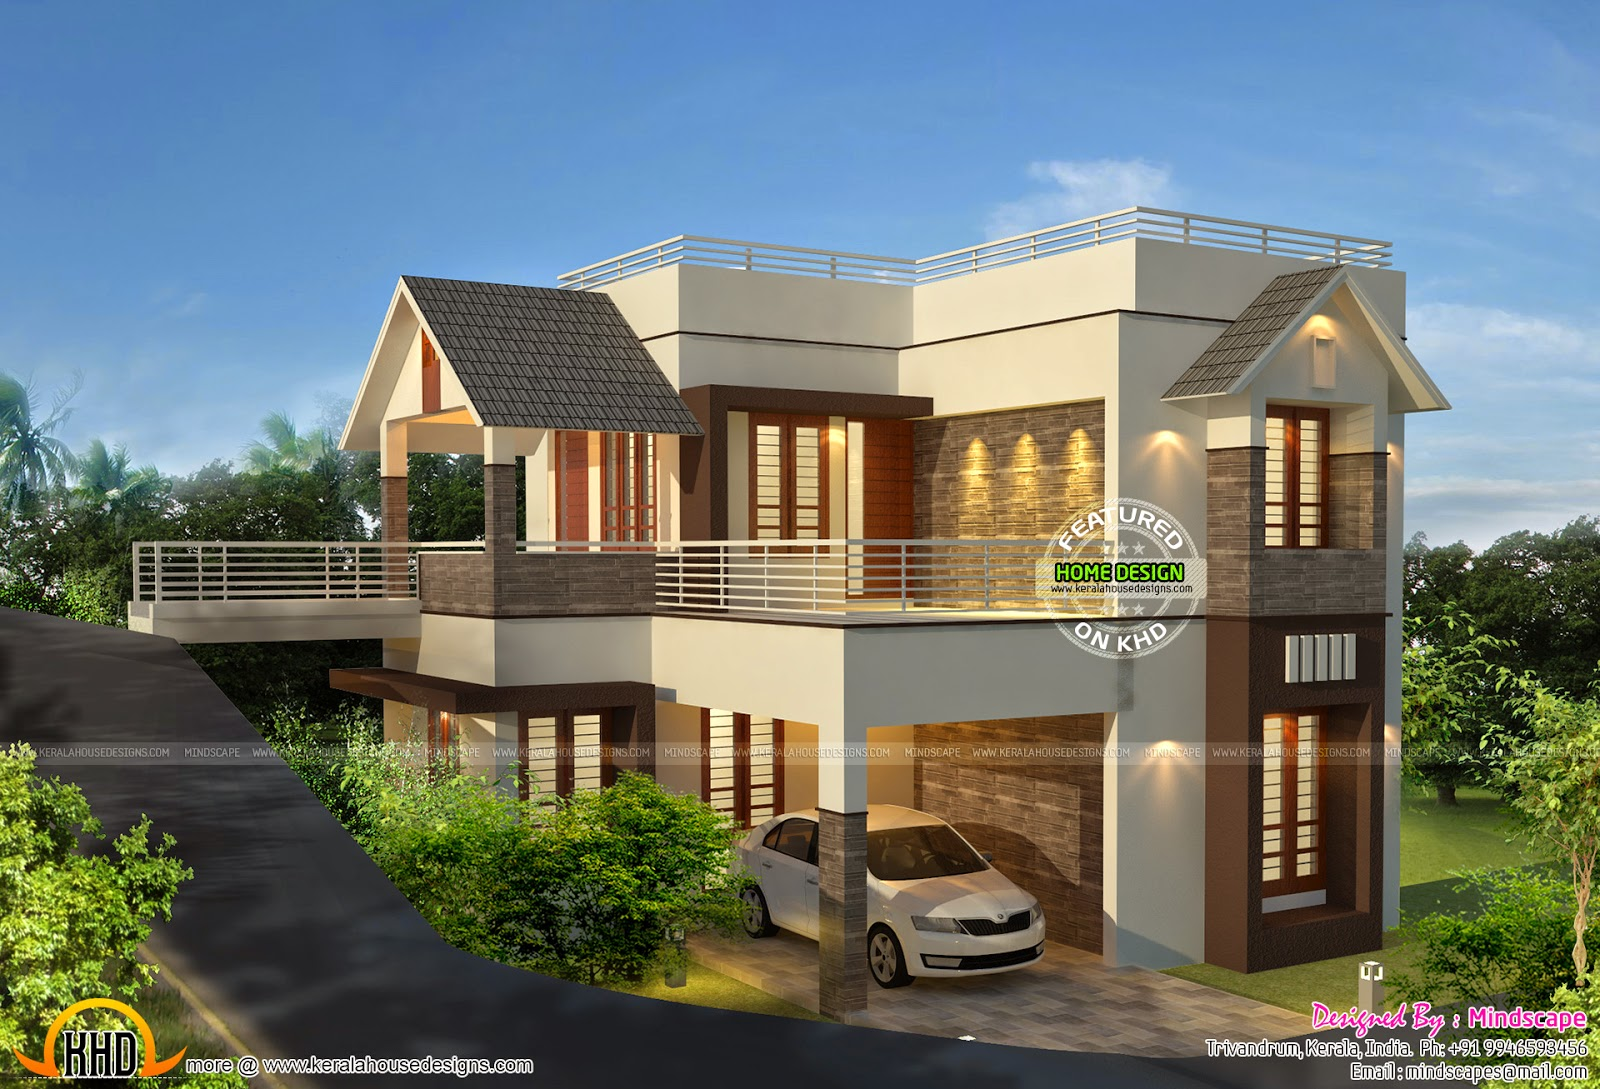 Awesome modern villa keralahousedesigns for Modern house plans for 1600 sq ft